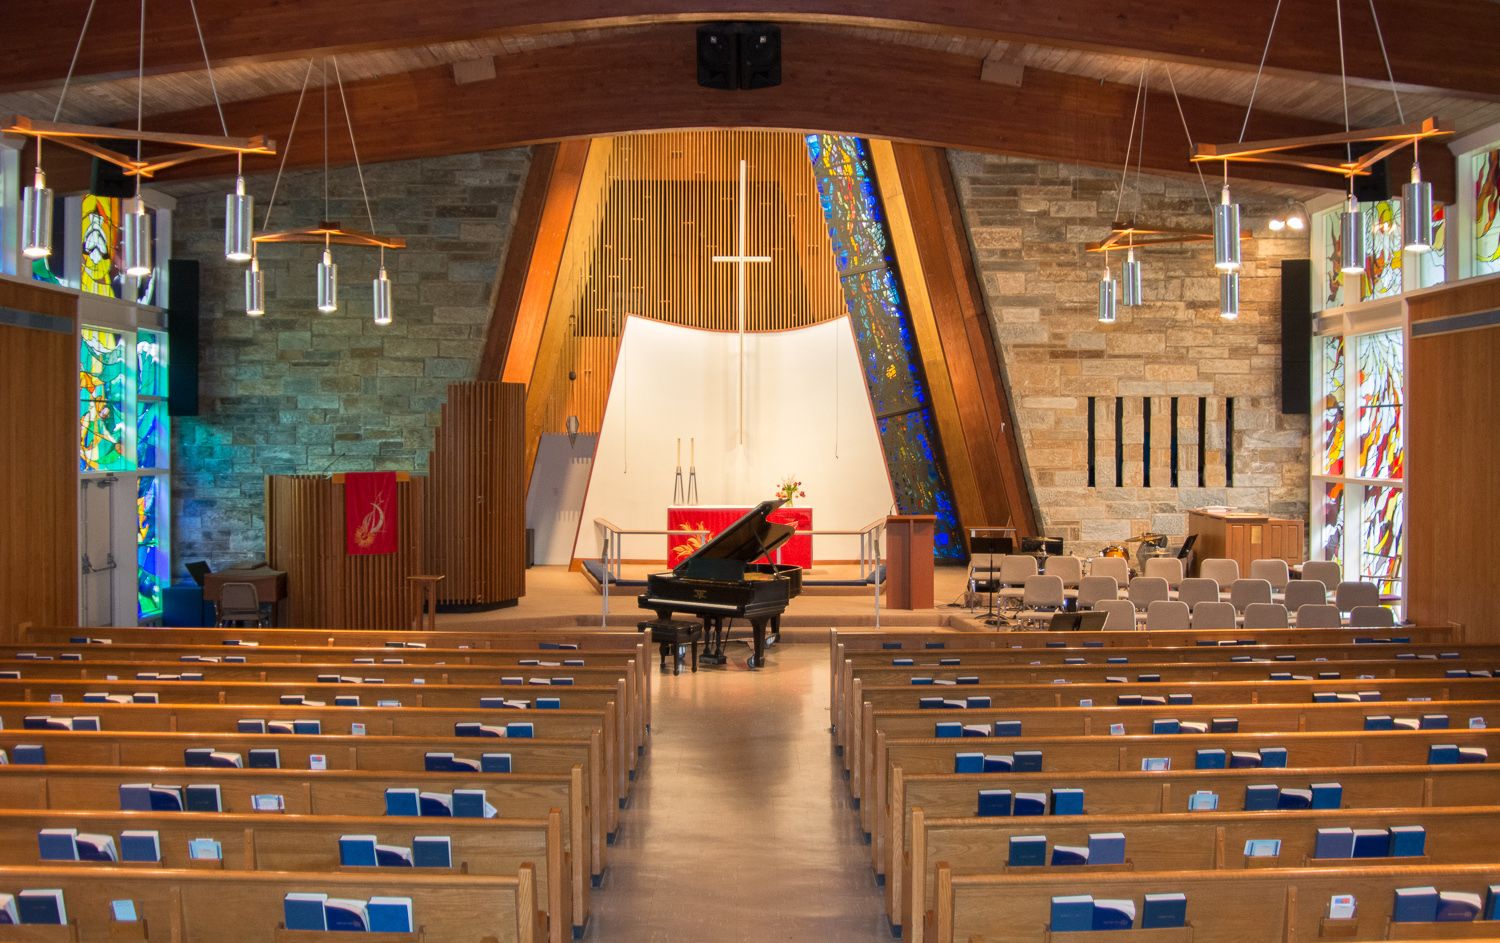 Our Sanctuary, which is a popular venue for concerts, recitals, and performances, weddings and funerals. Seating: approx. 300 people.